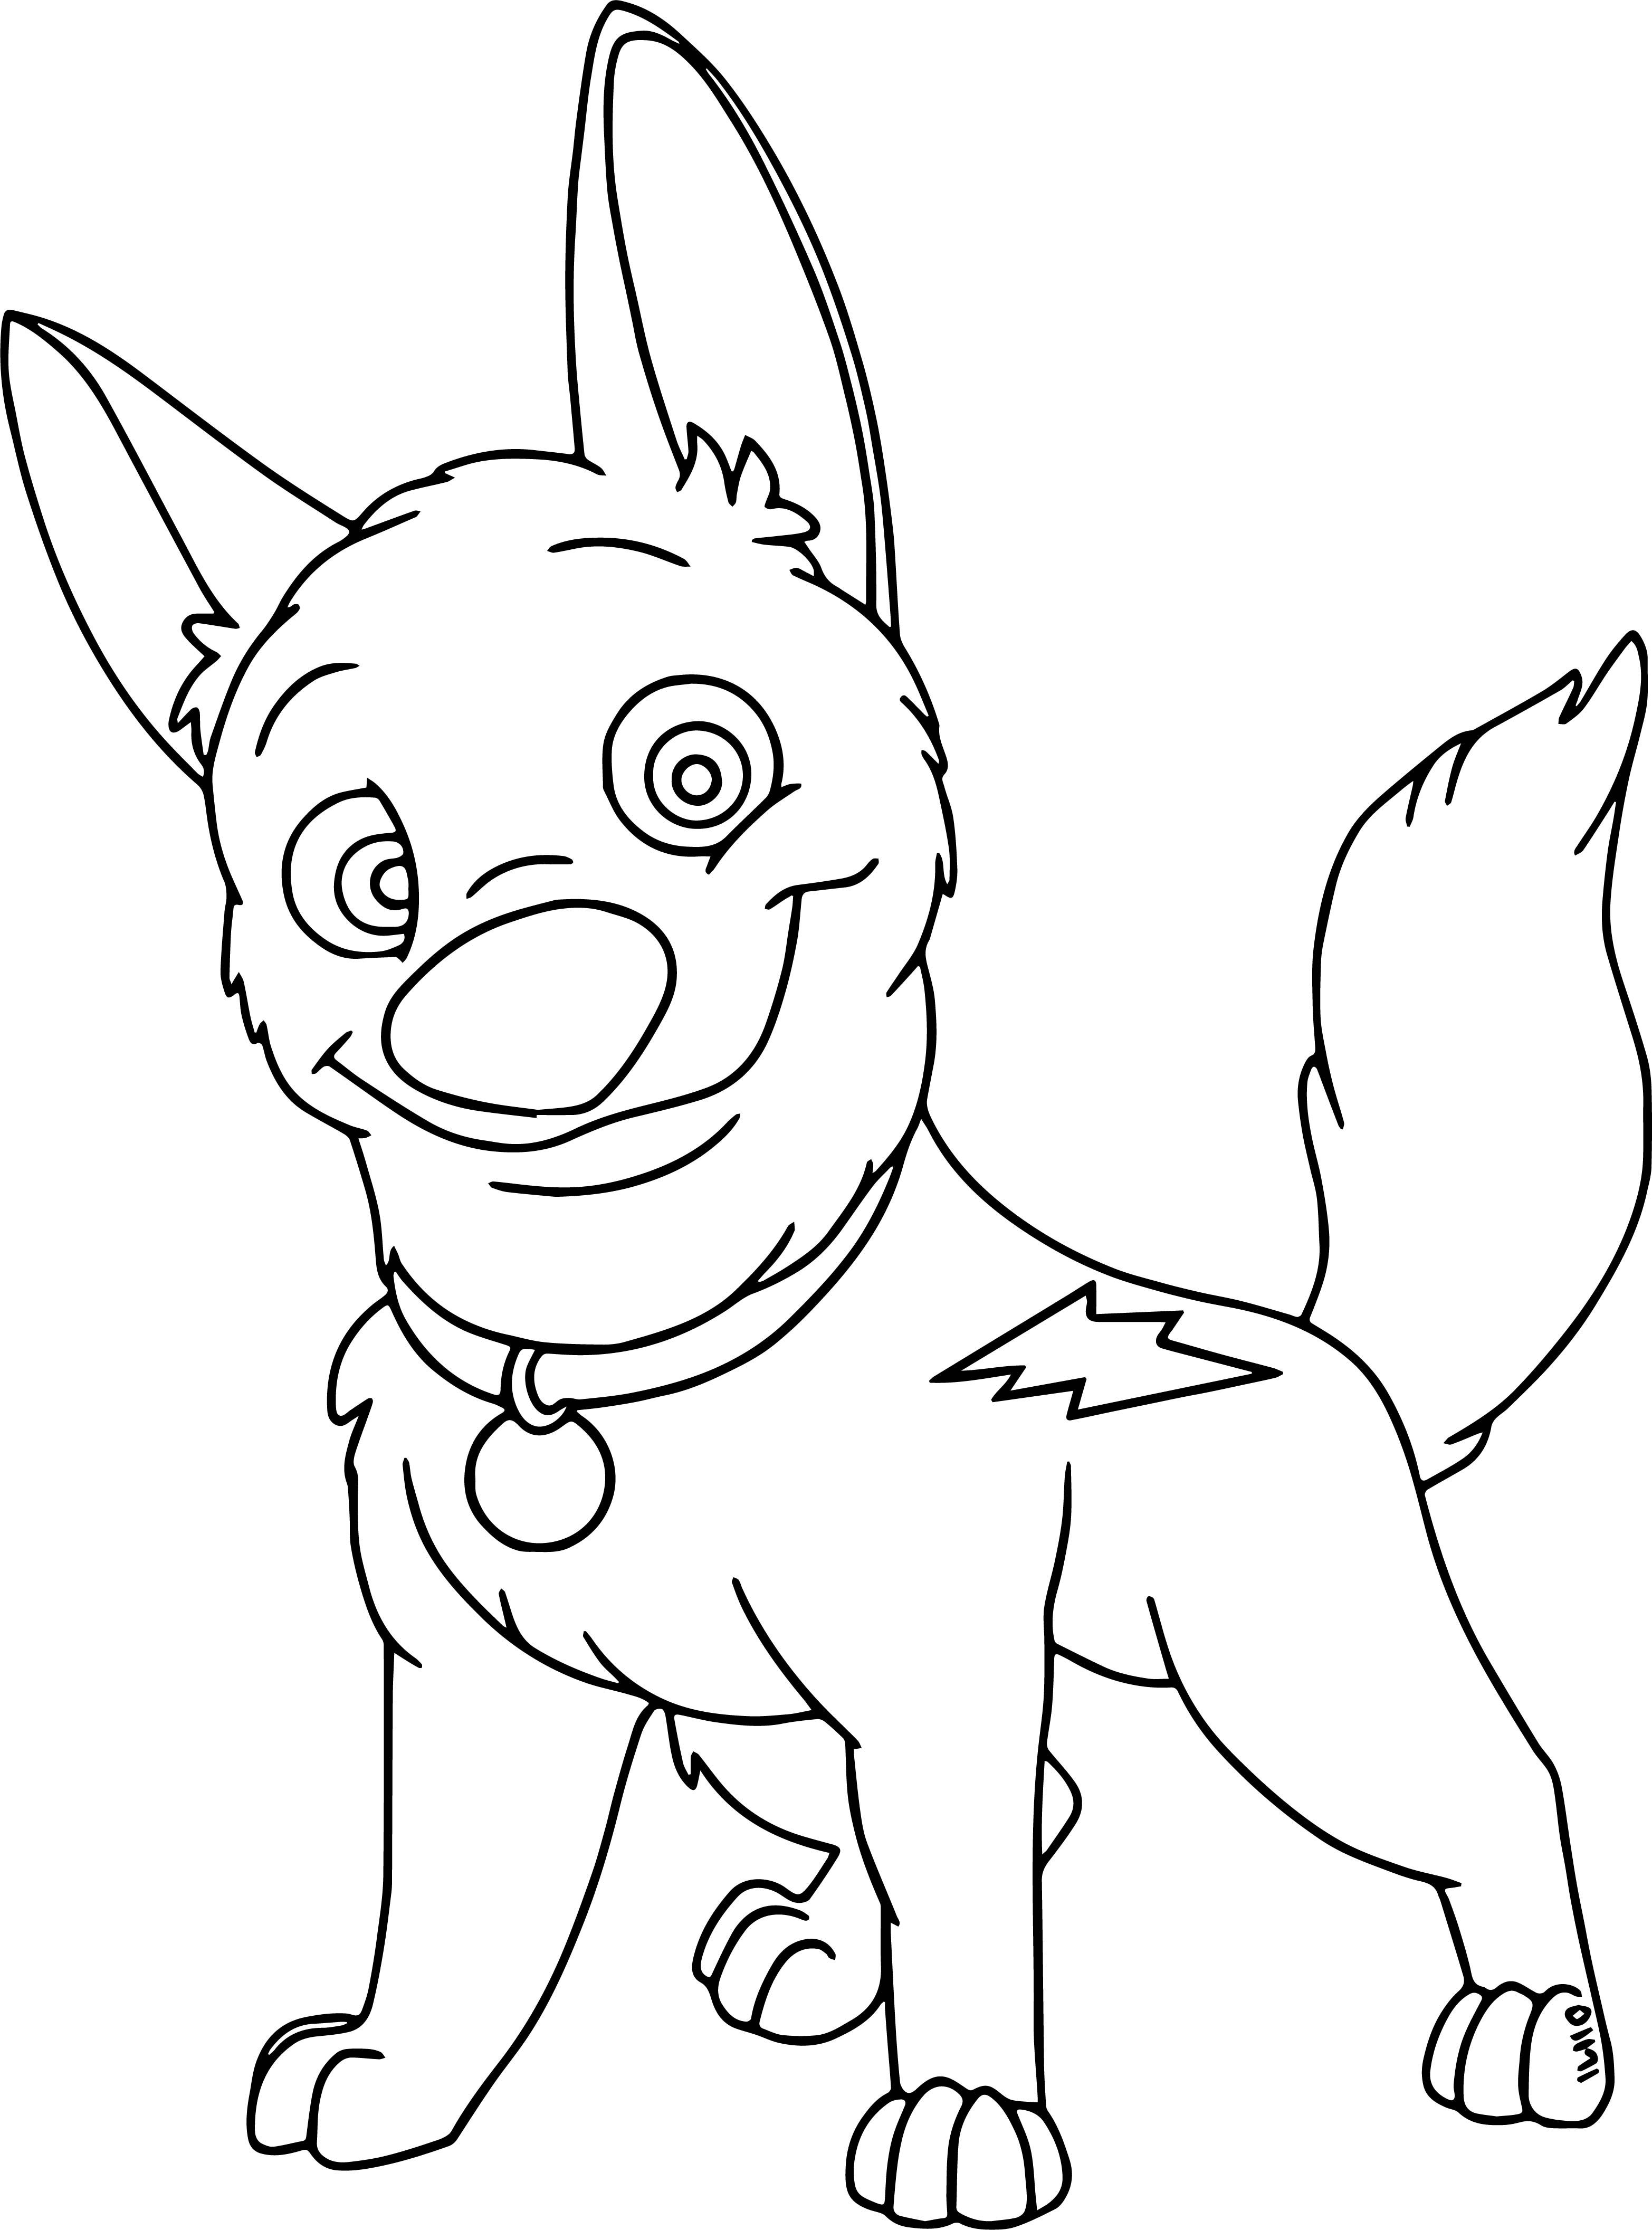 cool Cute Bolt Dog Coloring Pages Dog coloring page